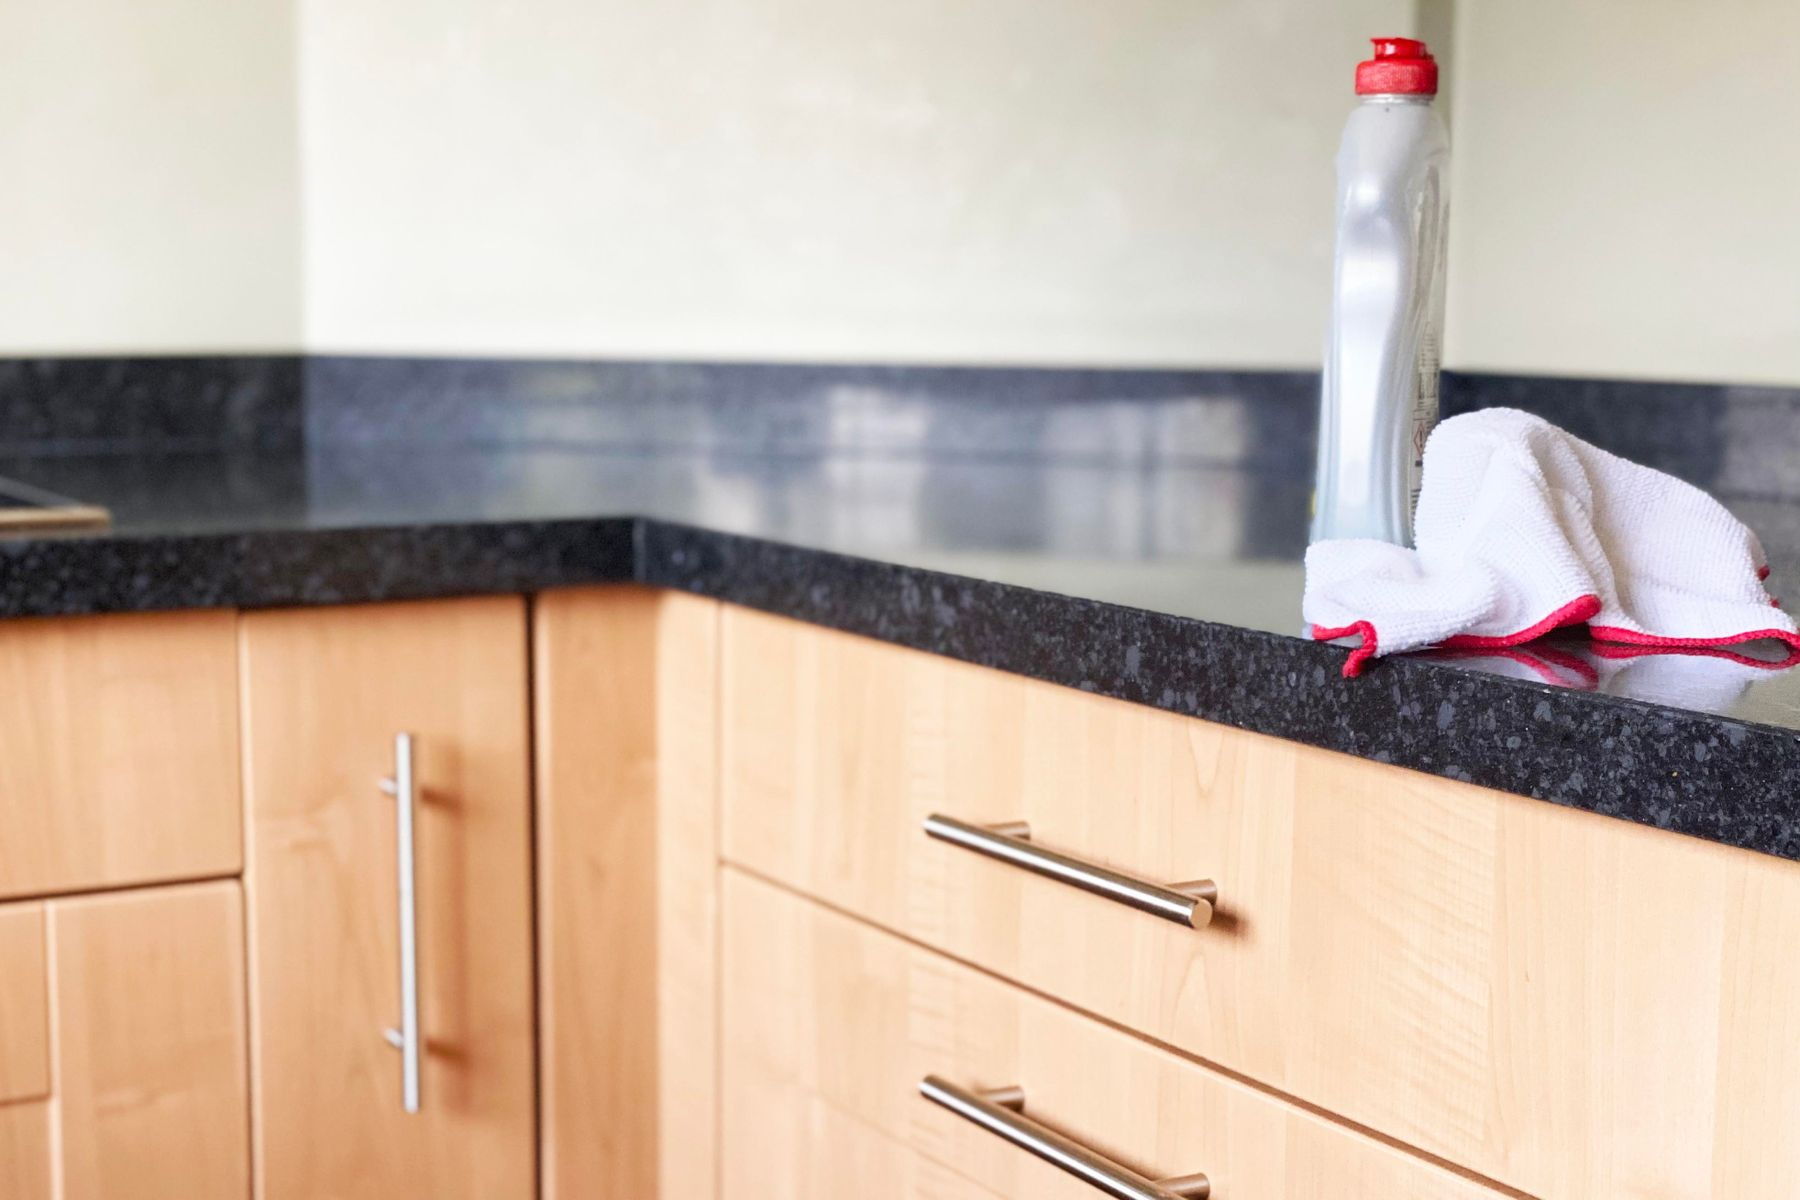 Washing up liquid and a cloth on top of a granite countertop and wooden kitchen cabinets